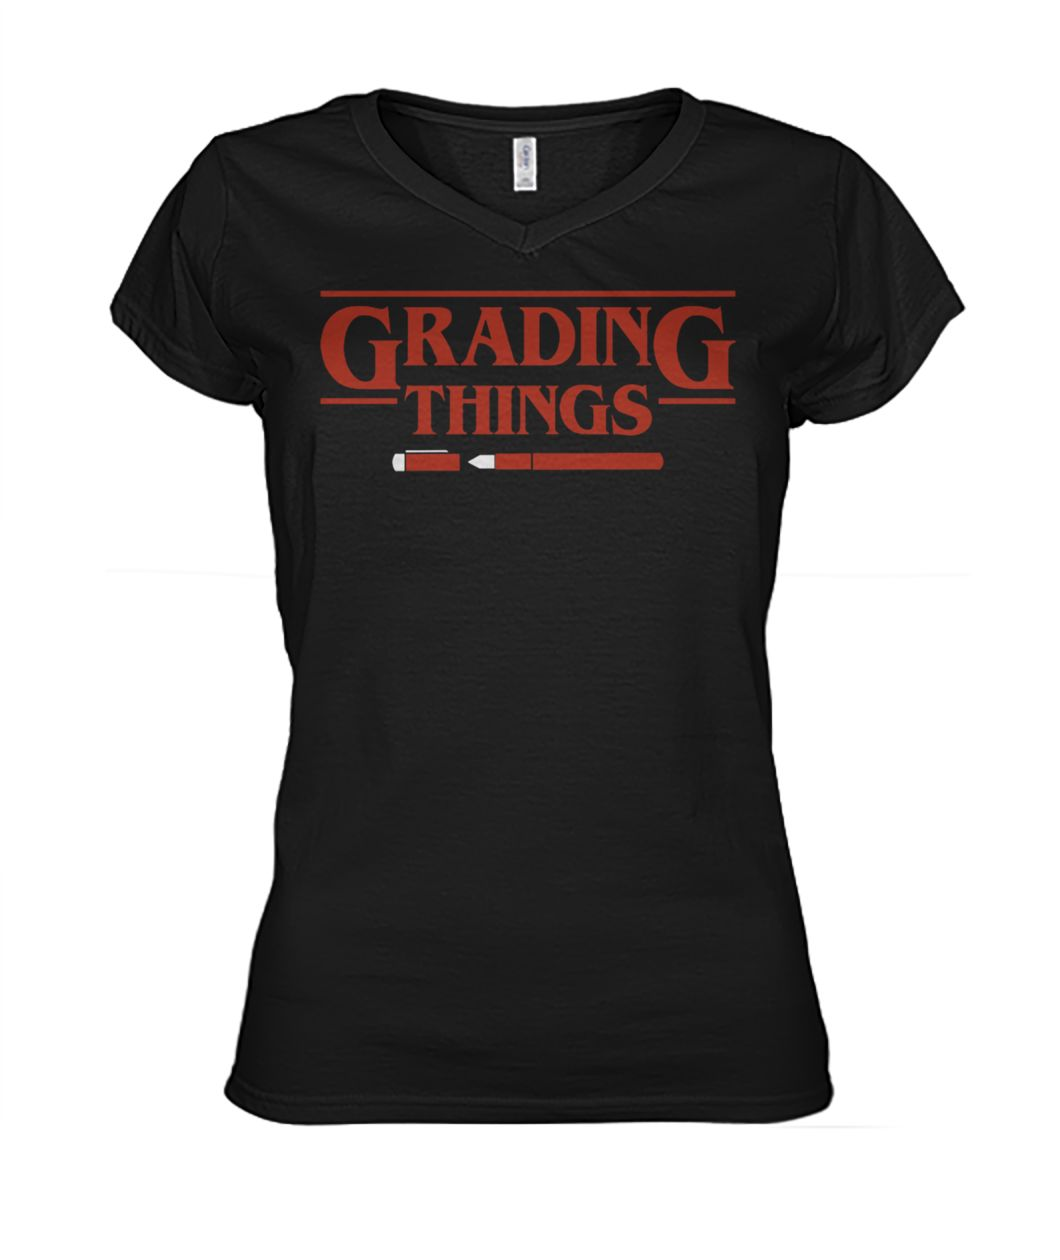 Stranger things grading things women's v-neck